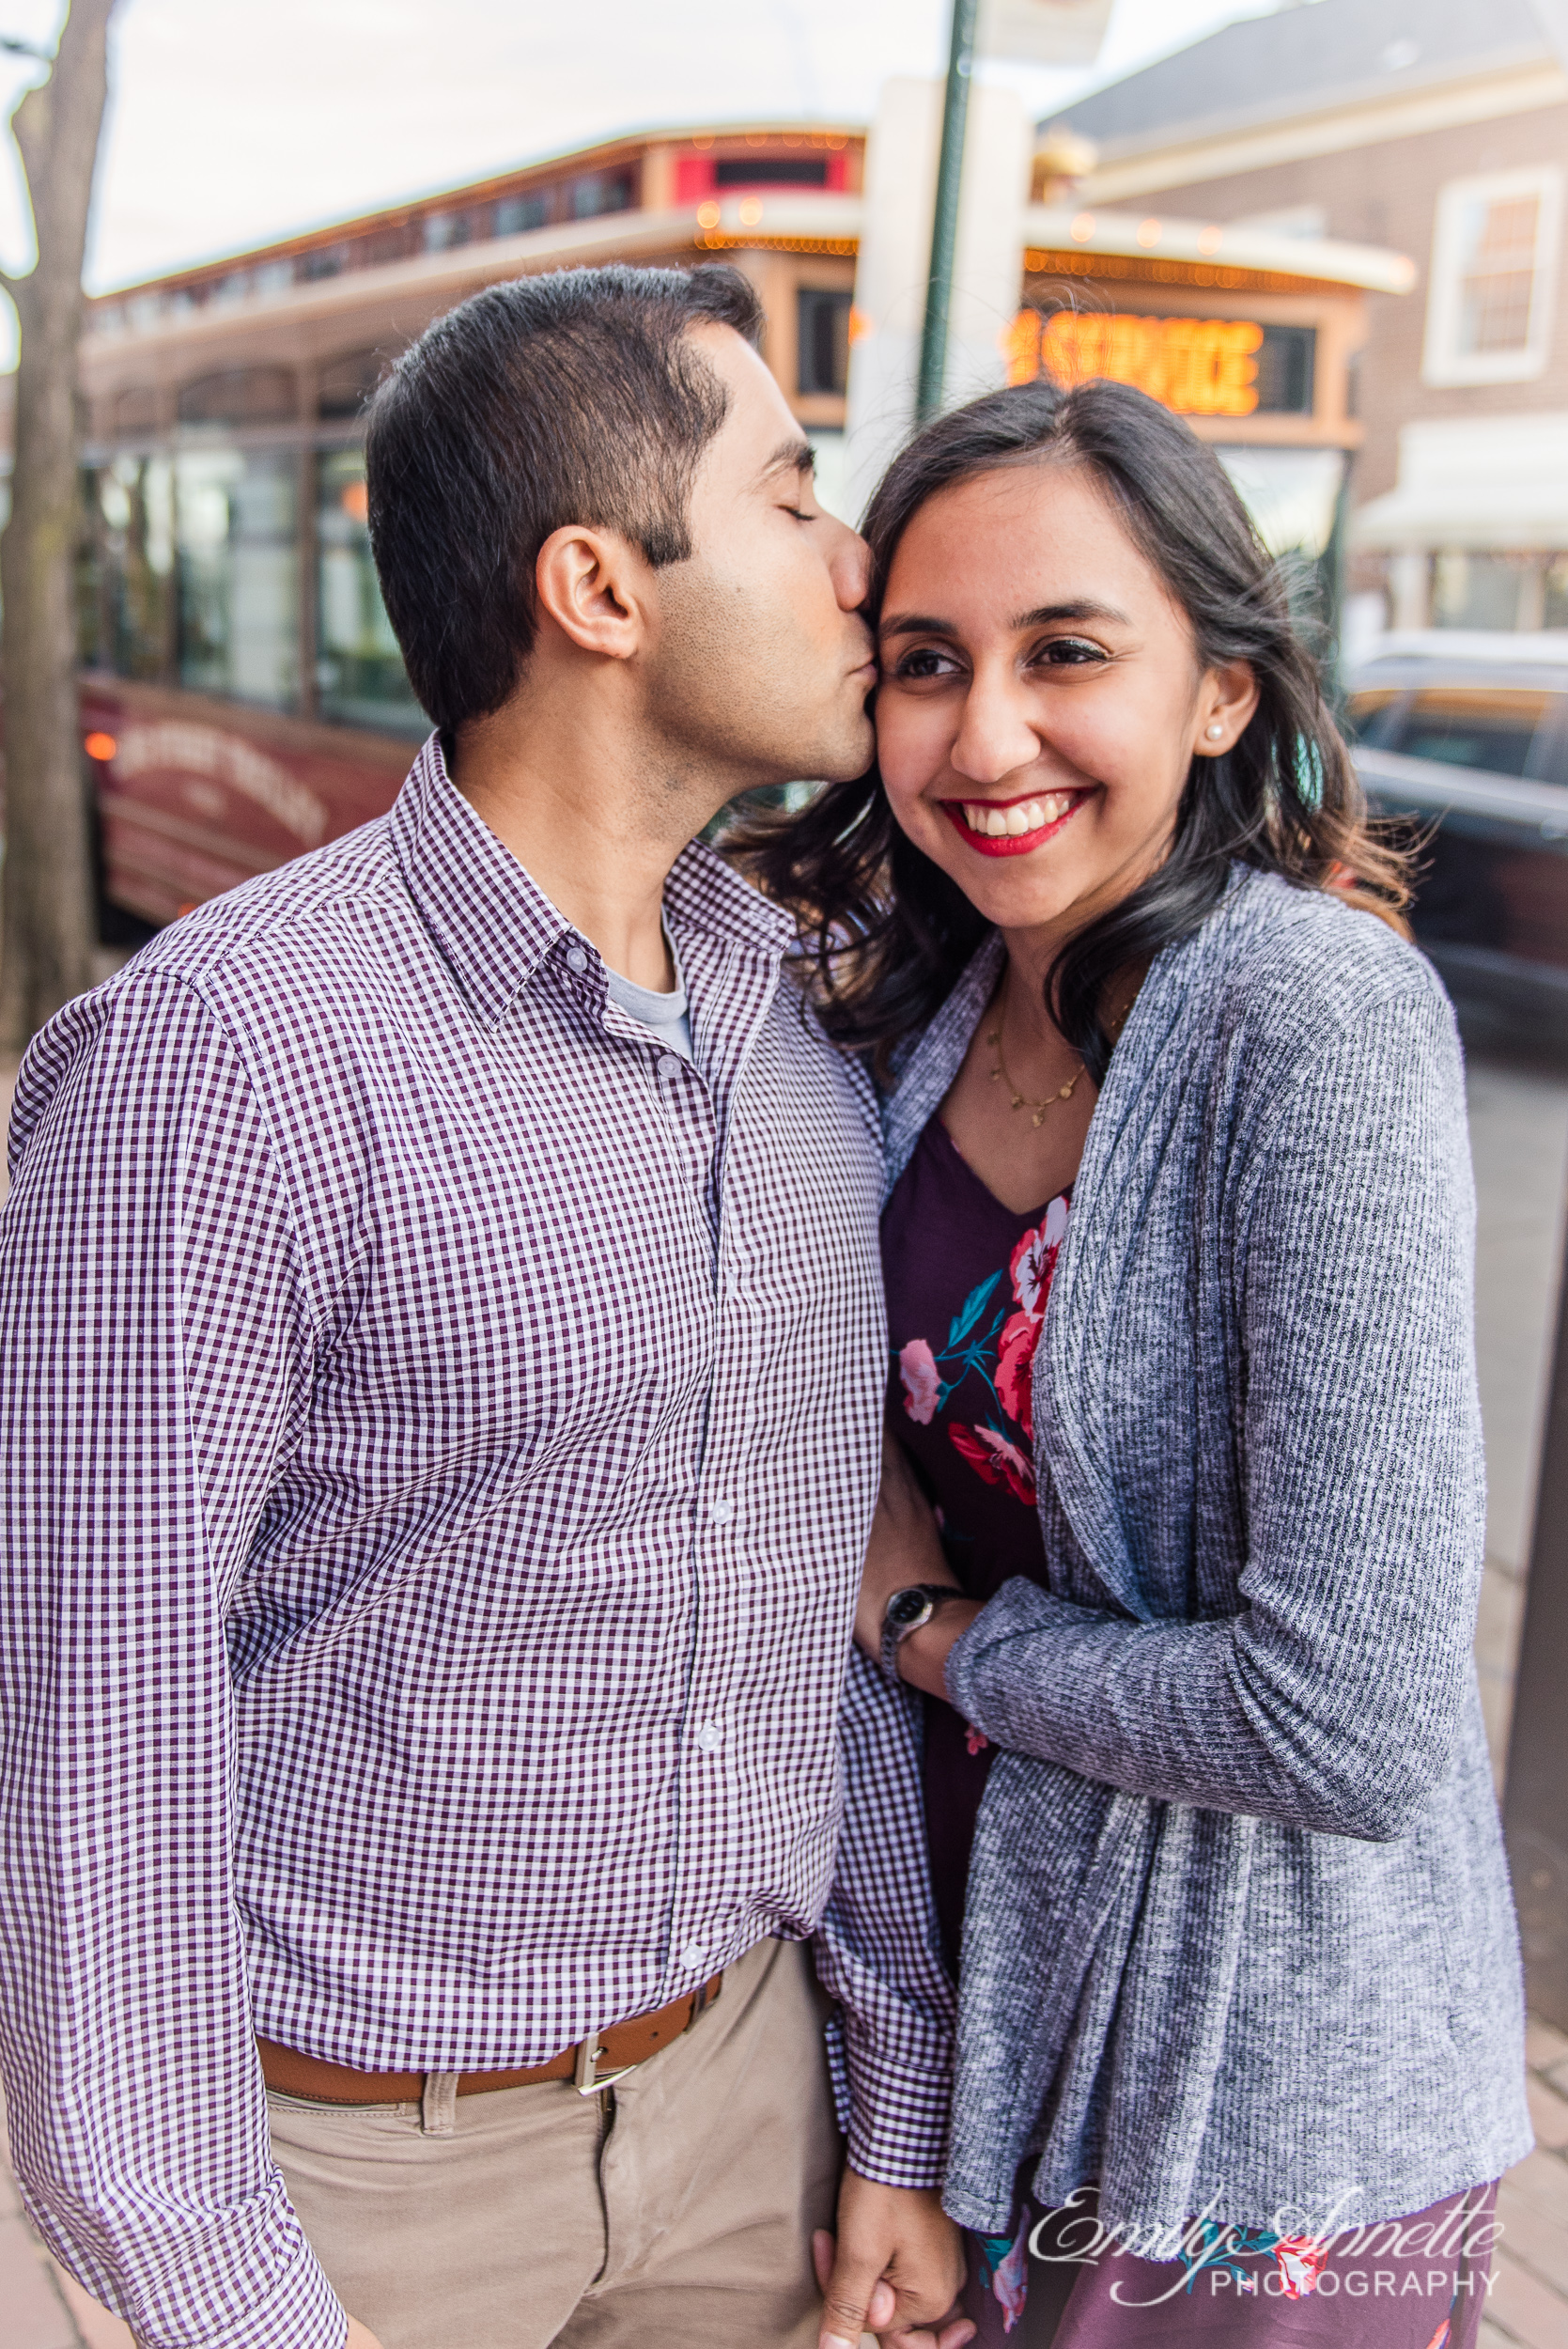 An engaged couple poses in Old Town Alexandria Virginia with an iconic King Street trolley behind them for an engagement session